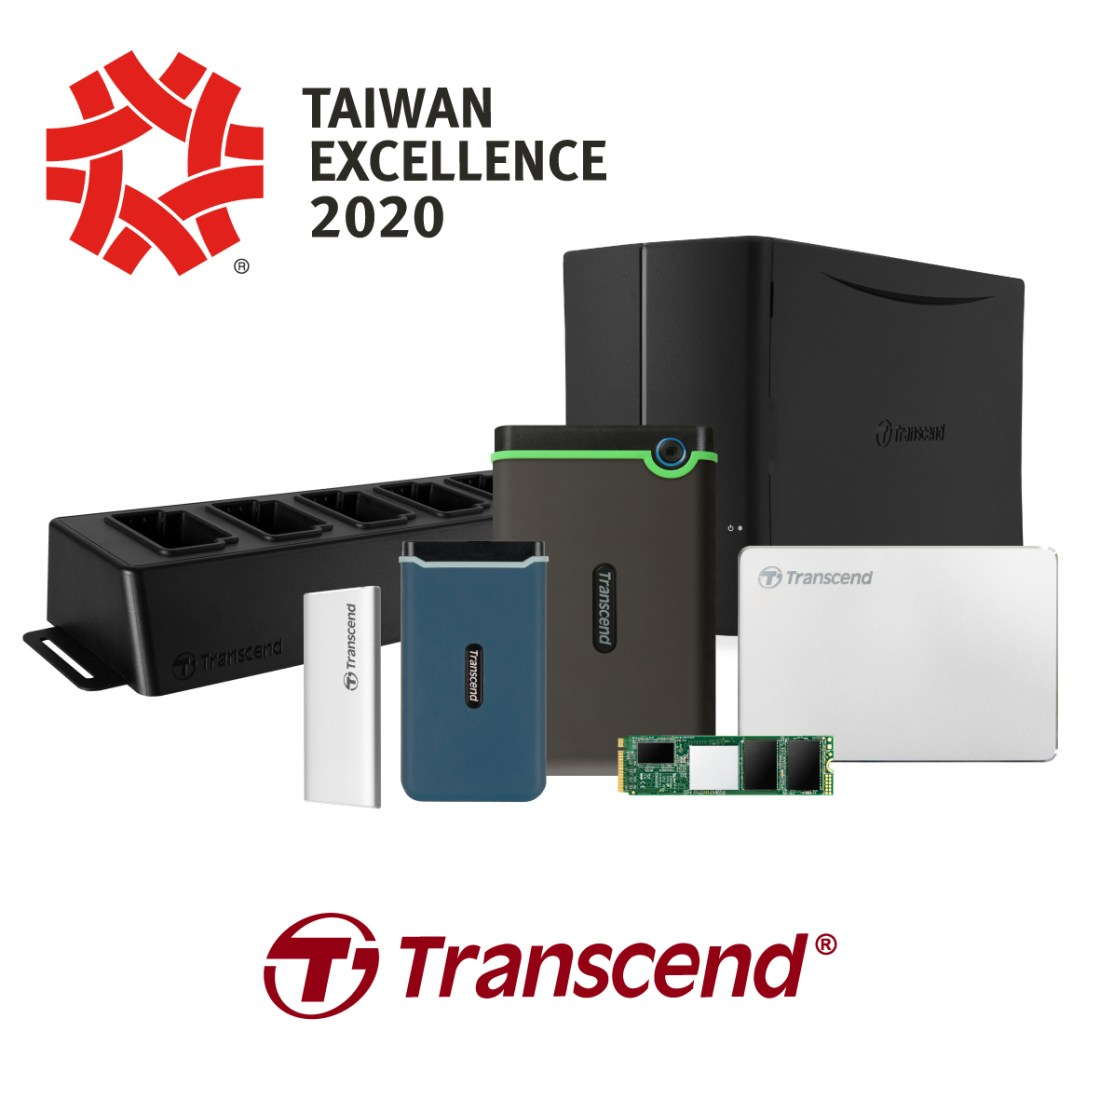 Transcend Taiwan Excellence 2020